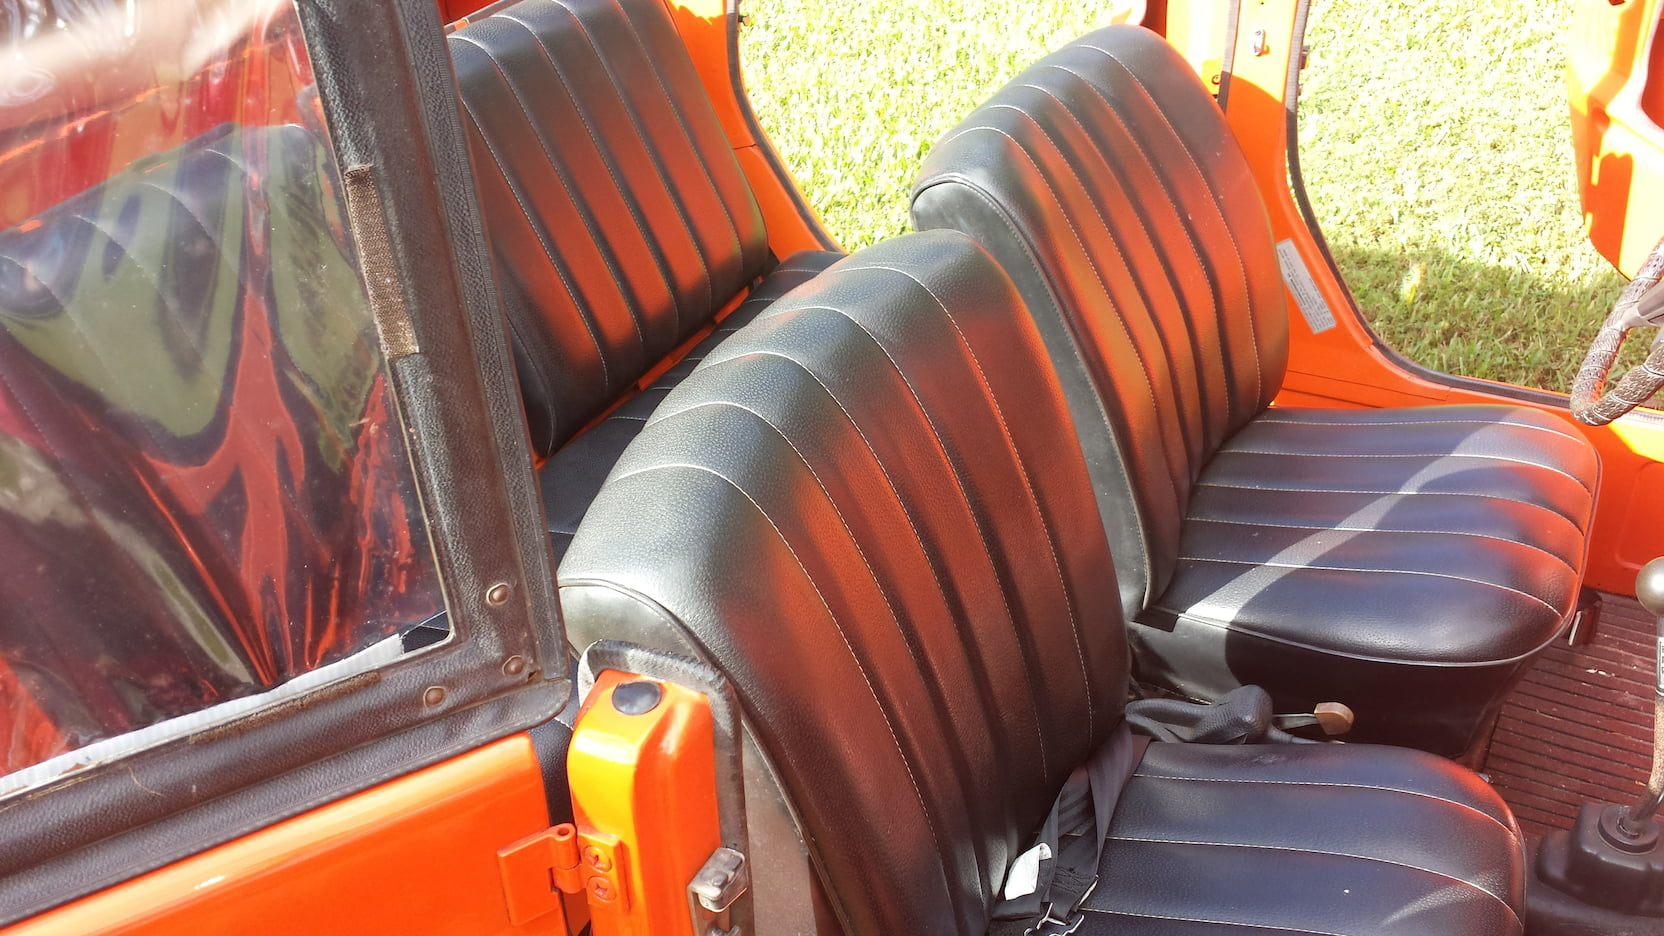 1974 Volkswagen Thing seats